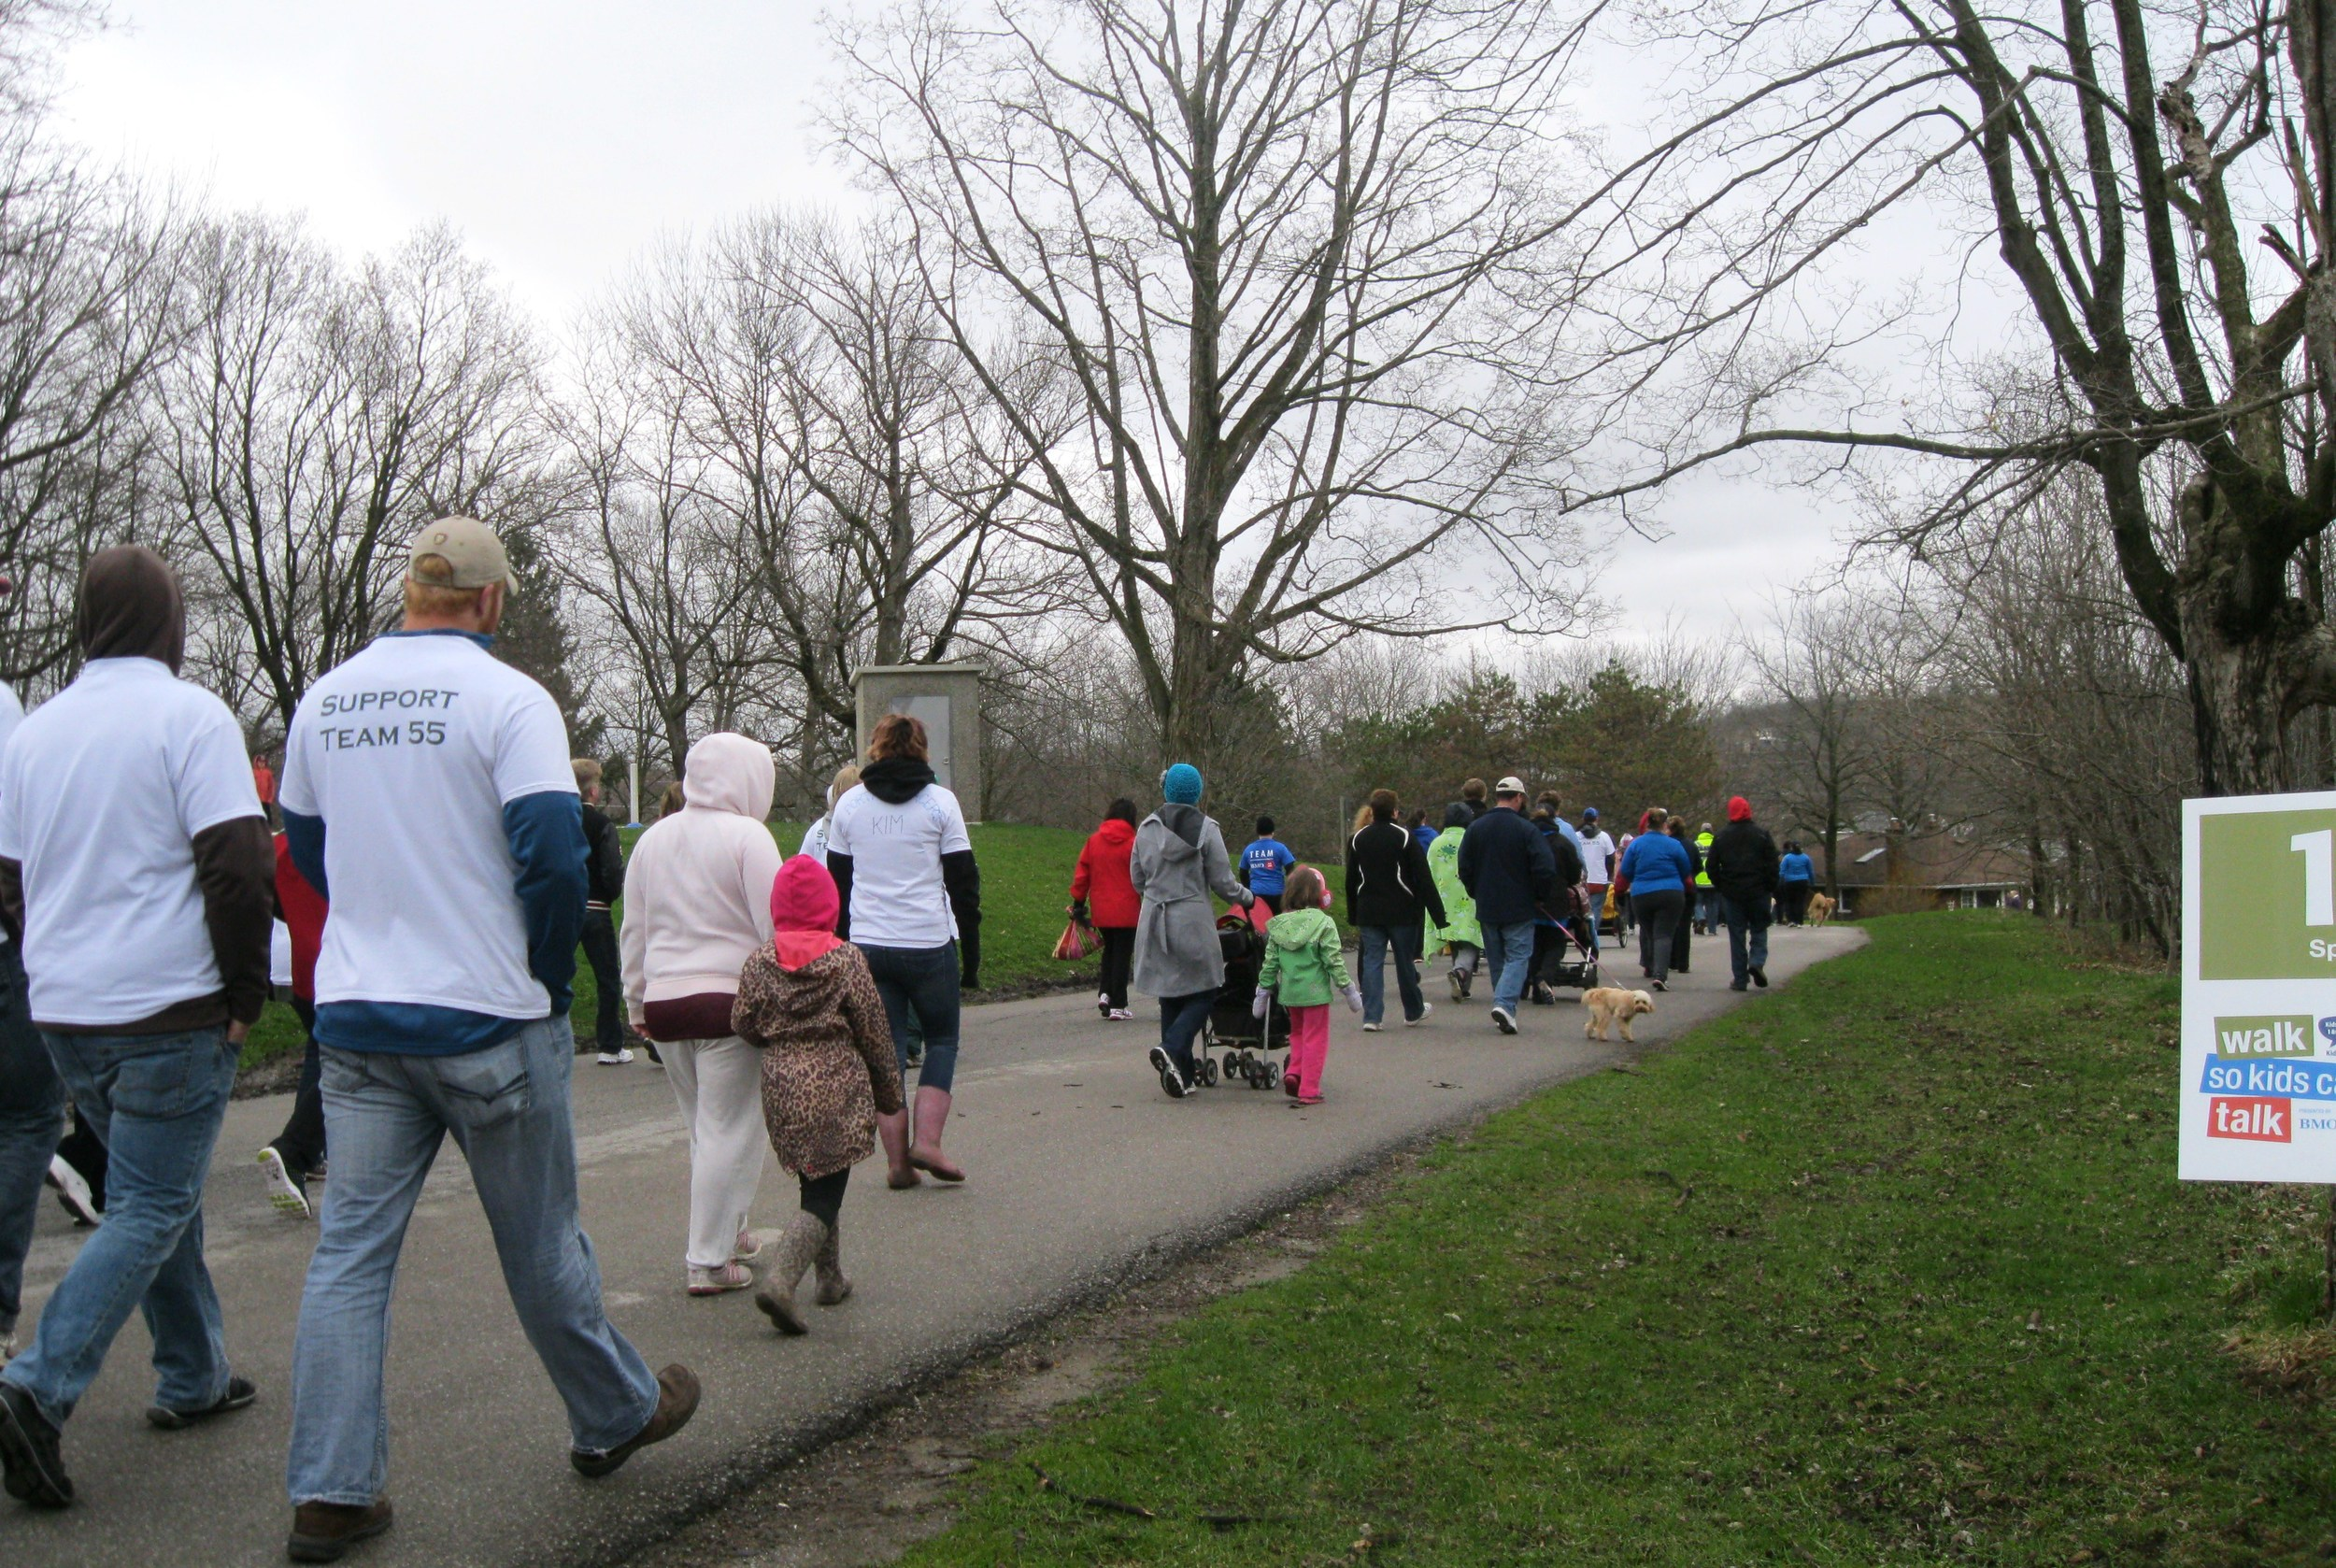 Adults, kids and pets alike take off for their first kilometer of the walk